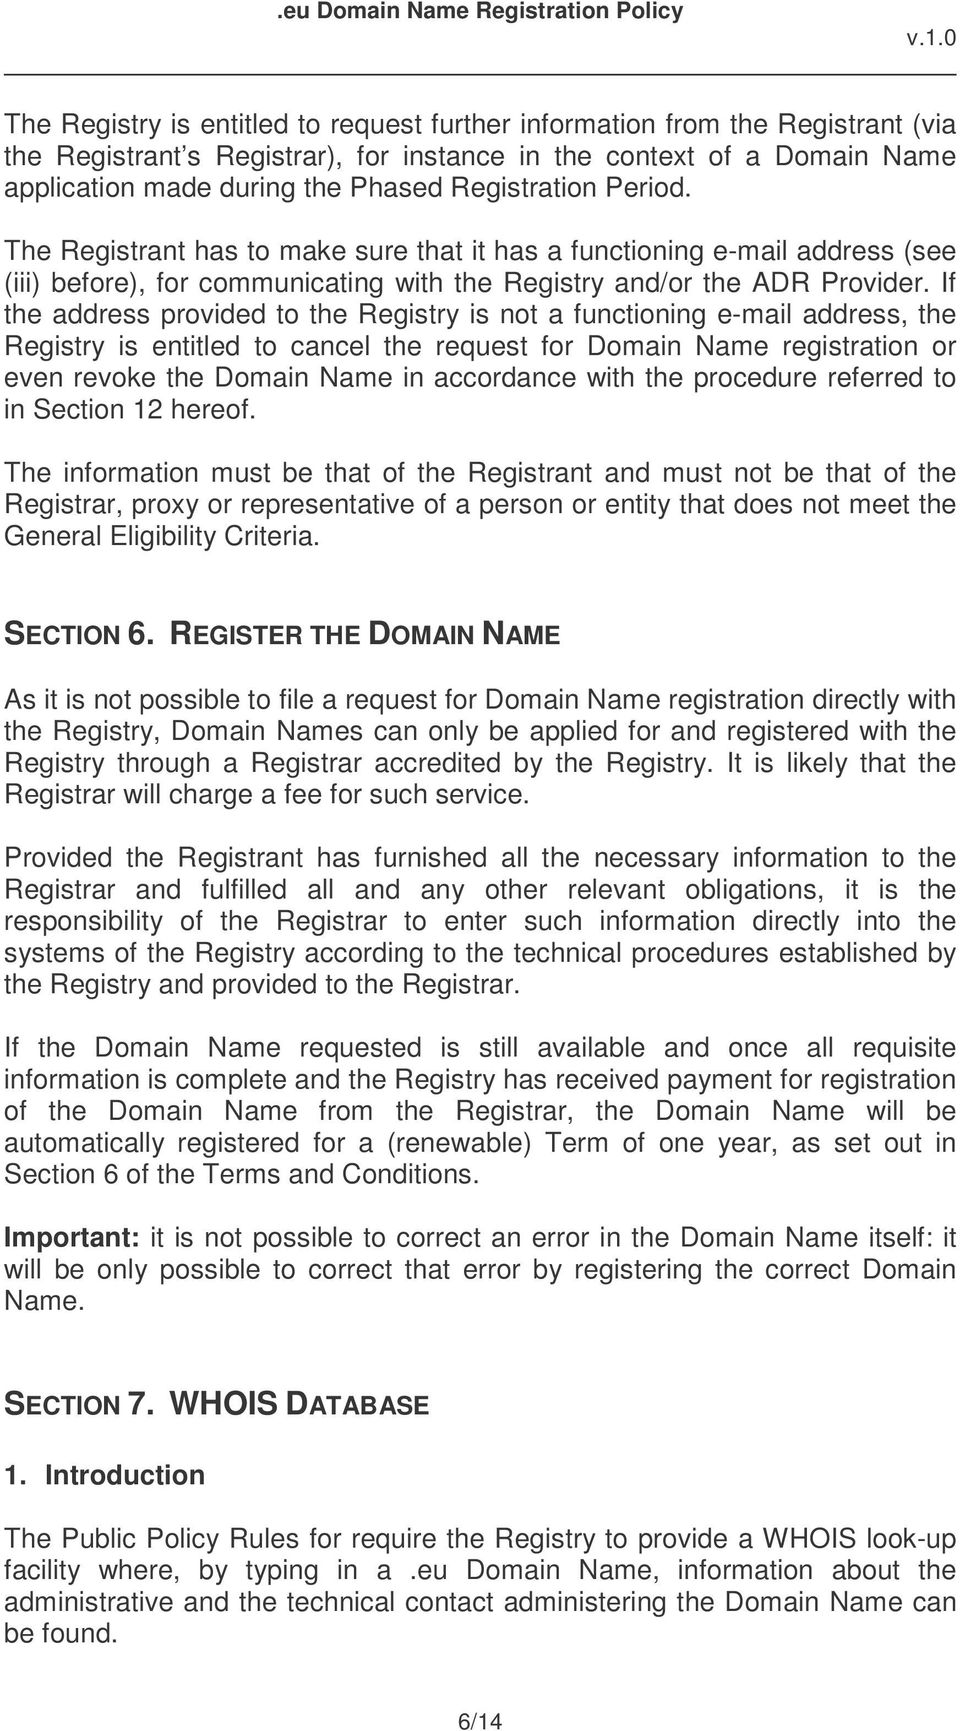 If the address provided to the Registry is not a functioning e-mail address, the Registry is entitled to cancel the request for Domain Name registration or even revoke the Domain Name in accordance